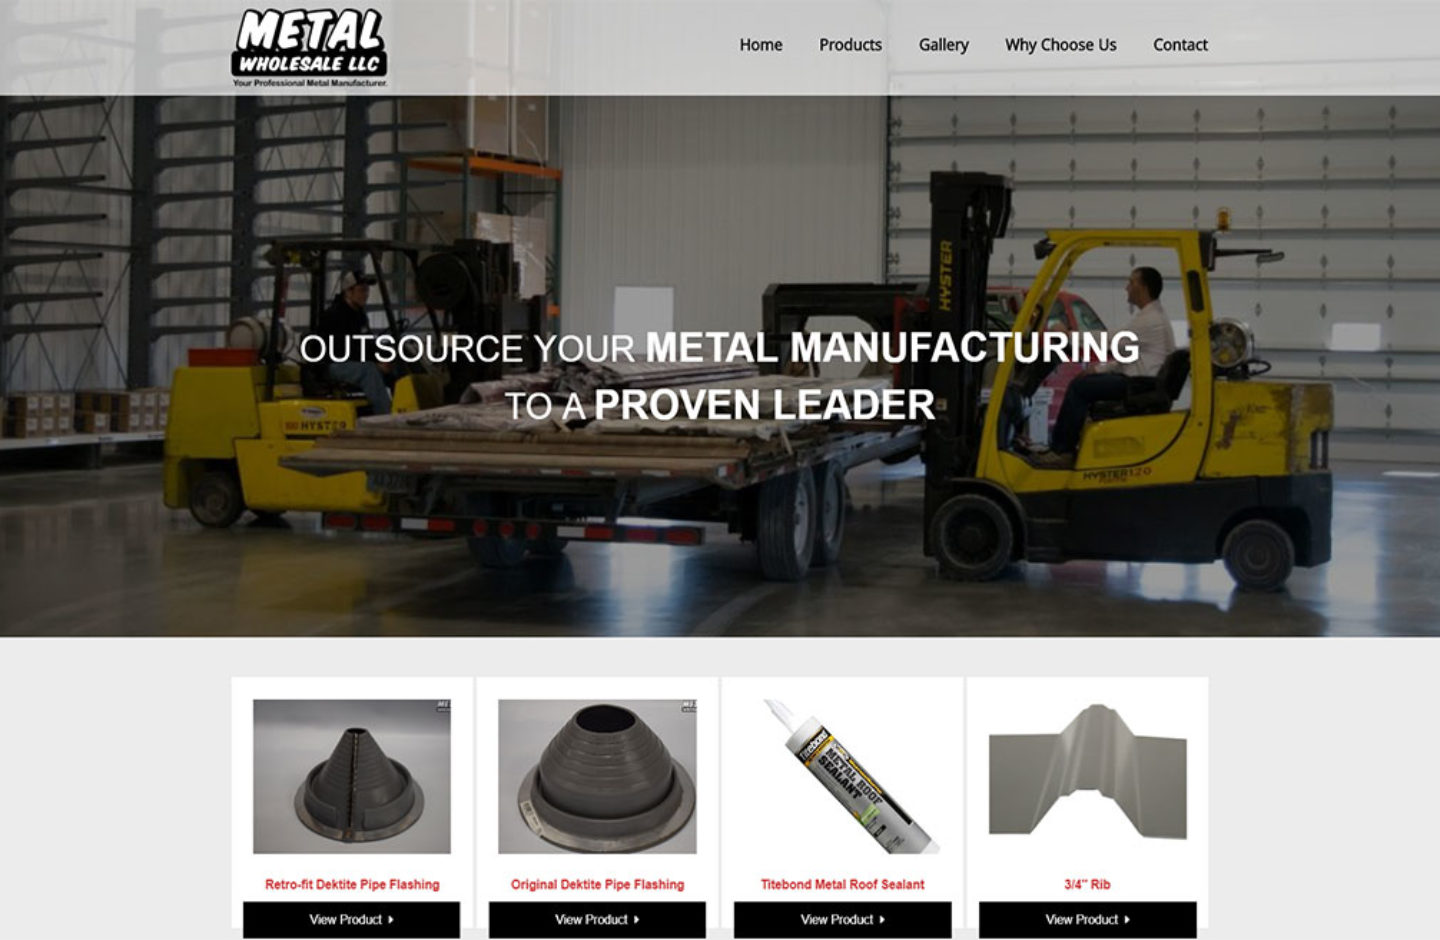 Metal Wholesale